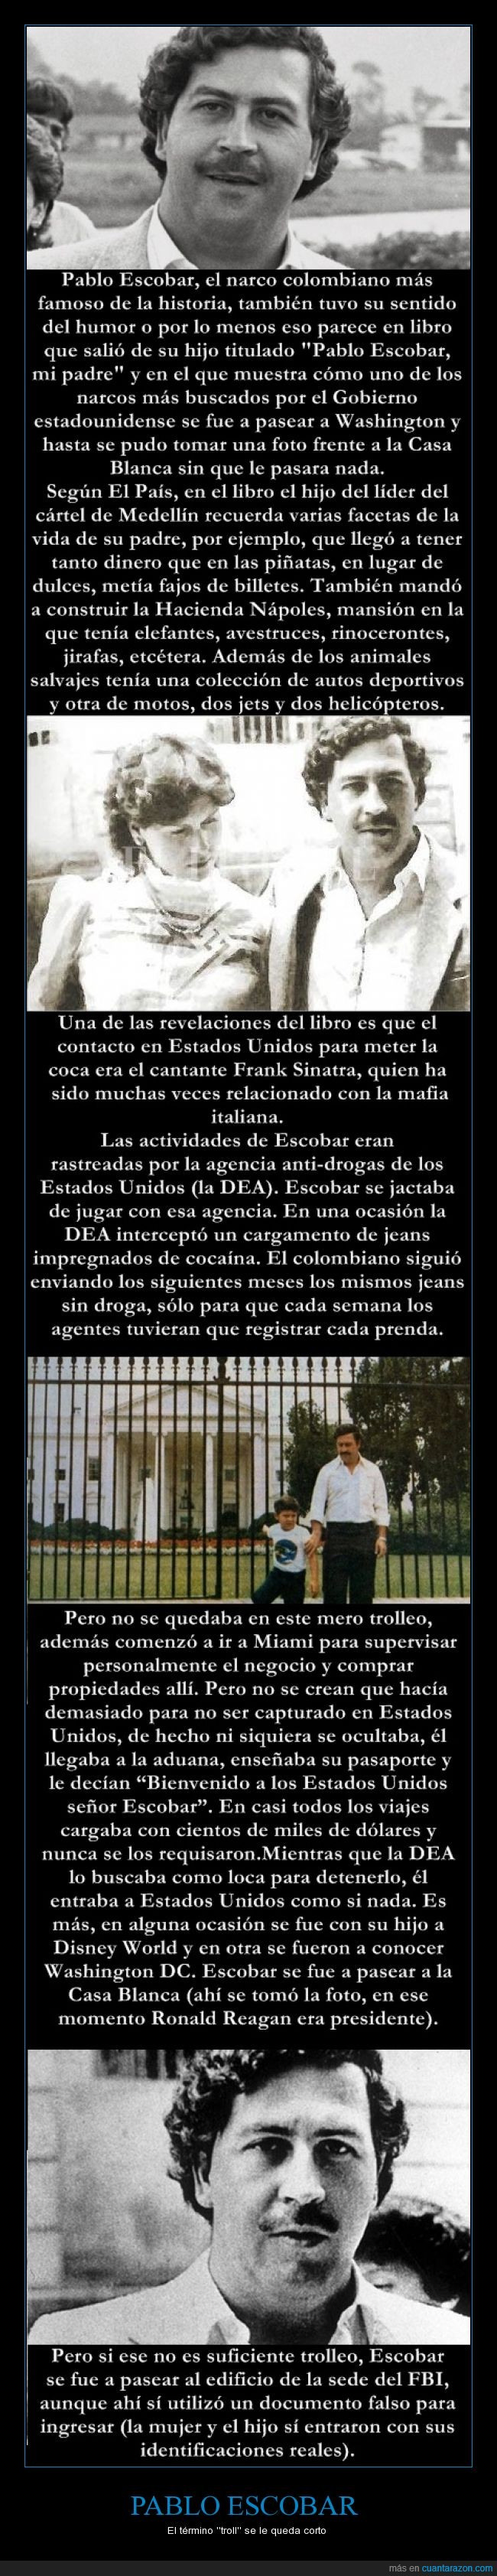 God Of Trolling,Pablo Escobar,Sopitas